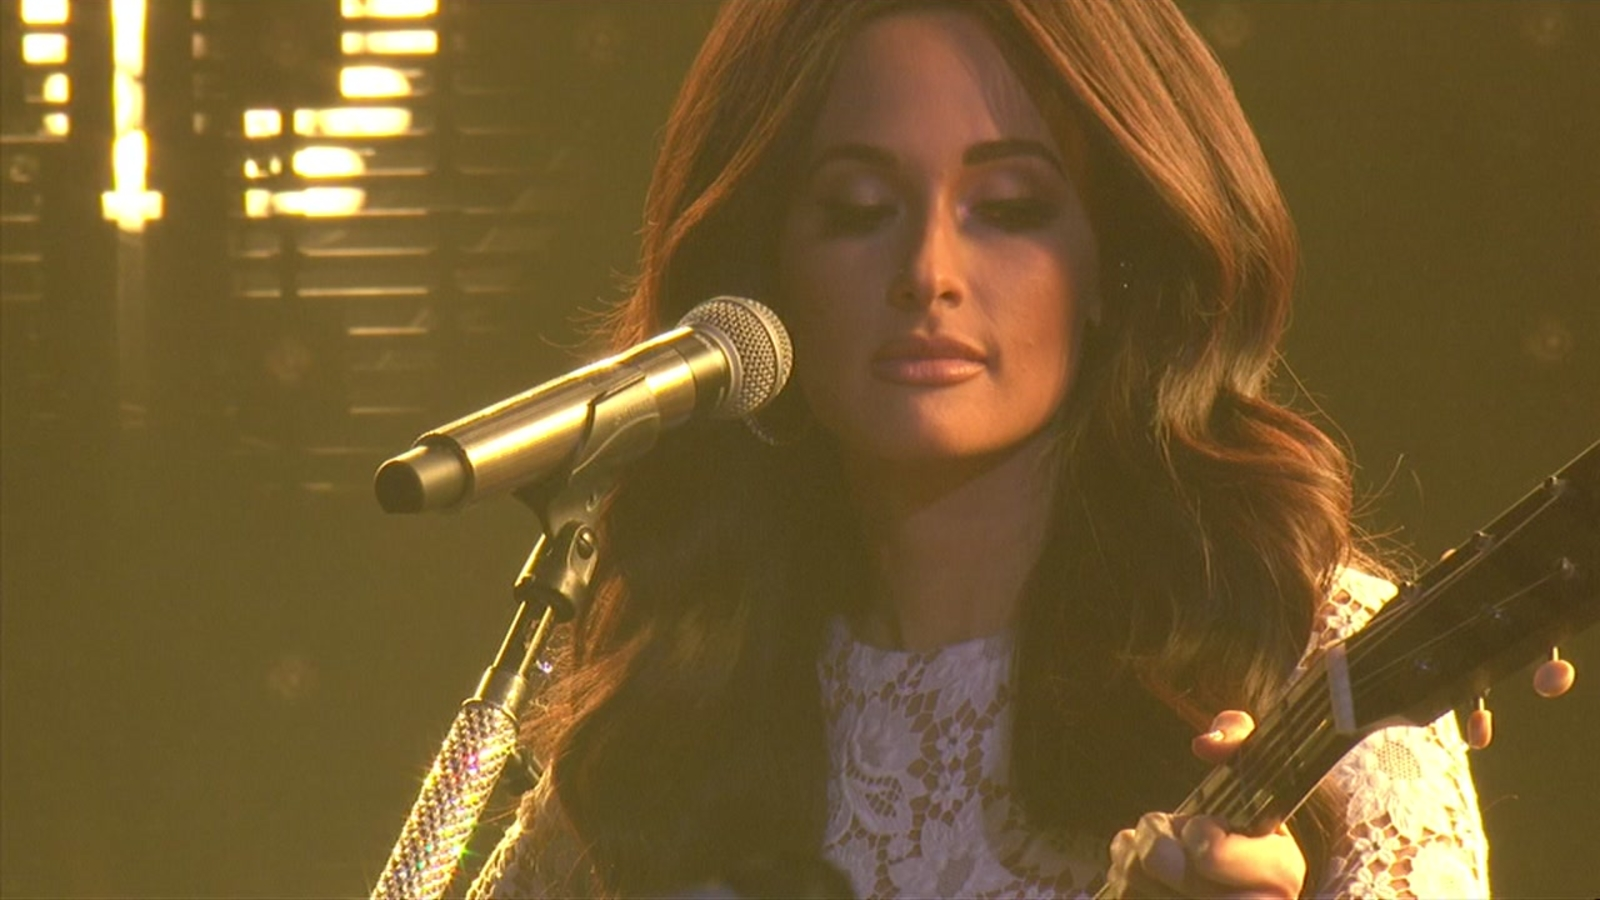 Kacey Musgraves Pays Tribute To Selena At Rodeohouston